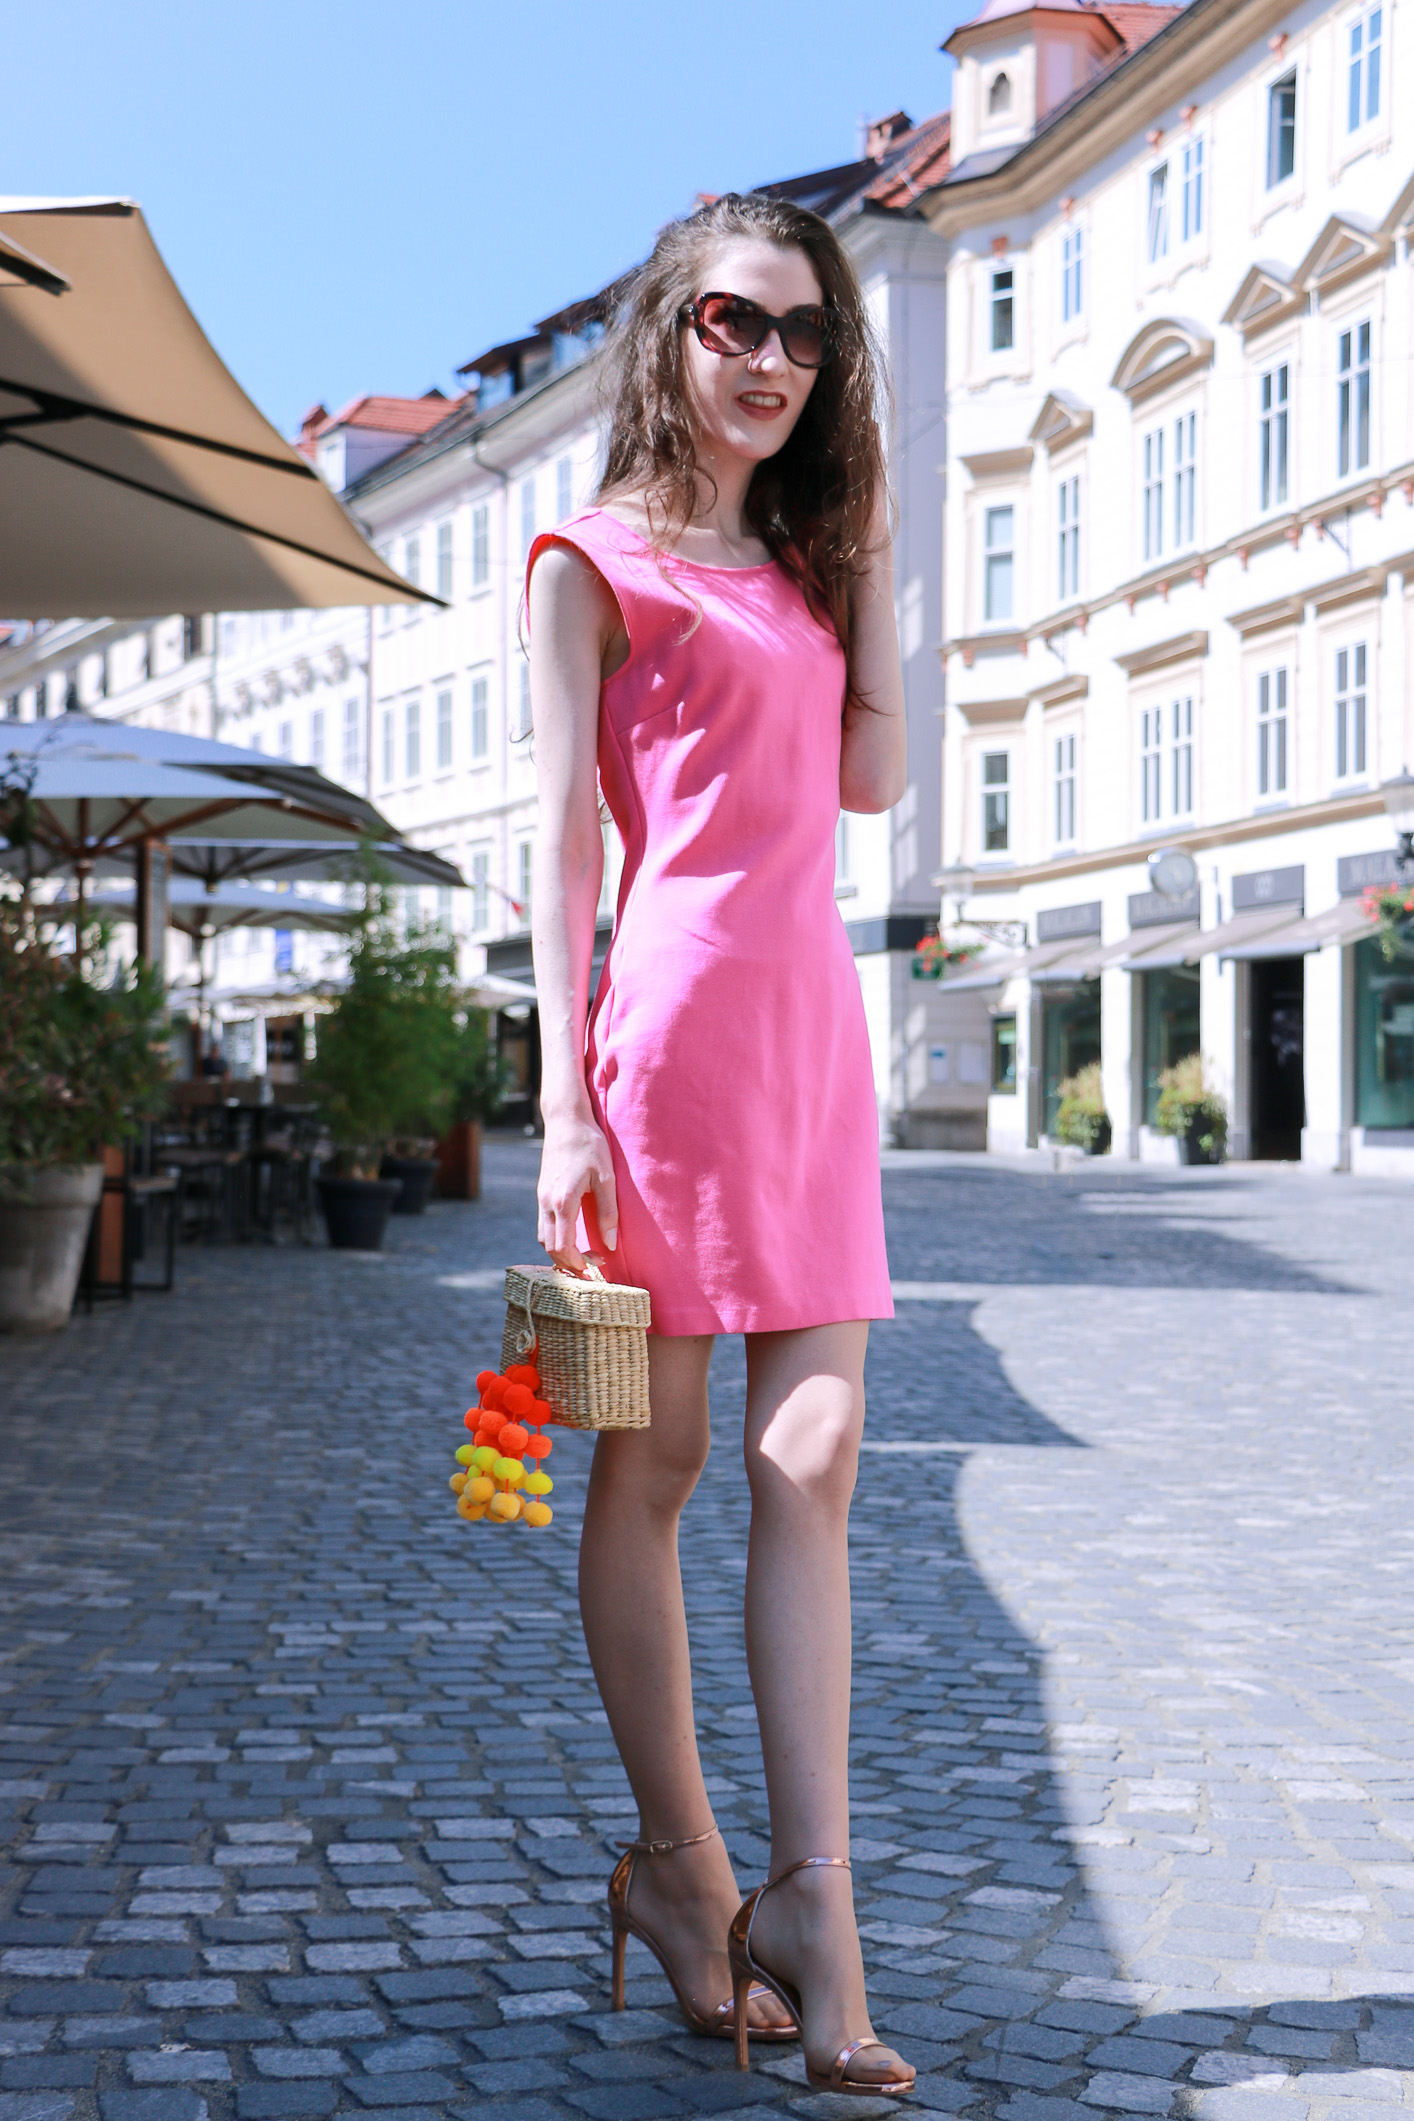 Fashion blogger Veronika Lipar of Brunette From Wall Street sharing how to wear head to toe pink outfit this summer